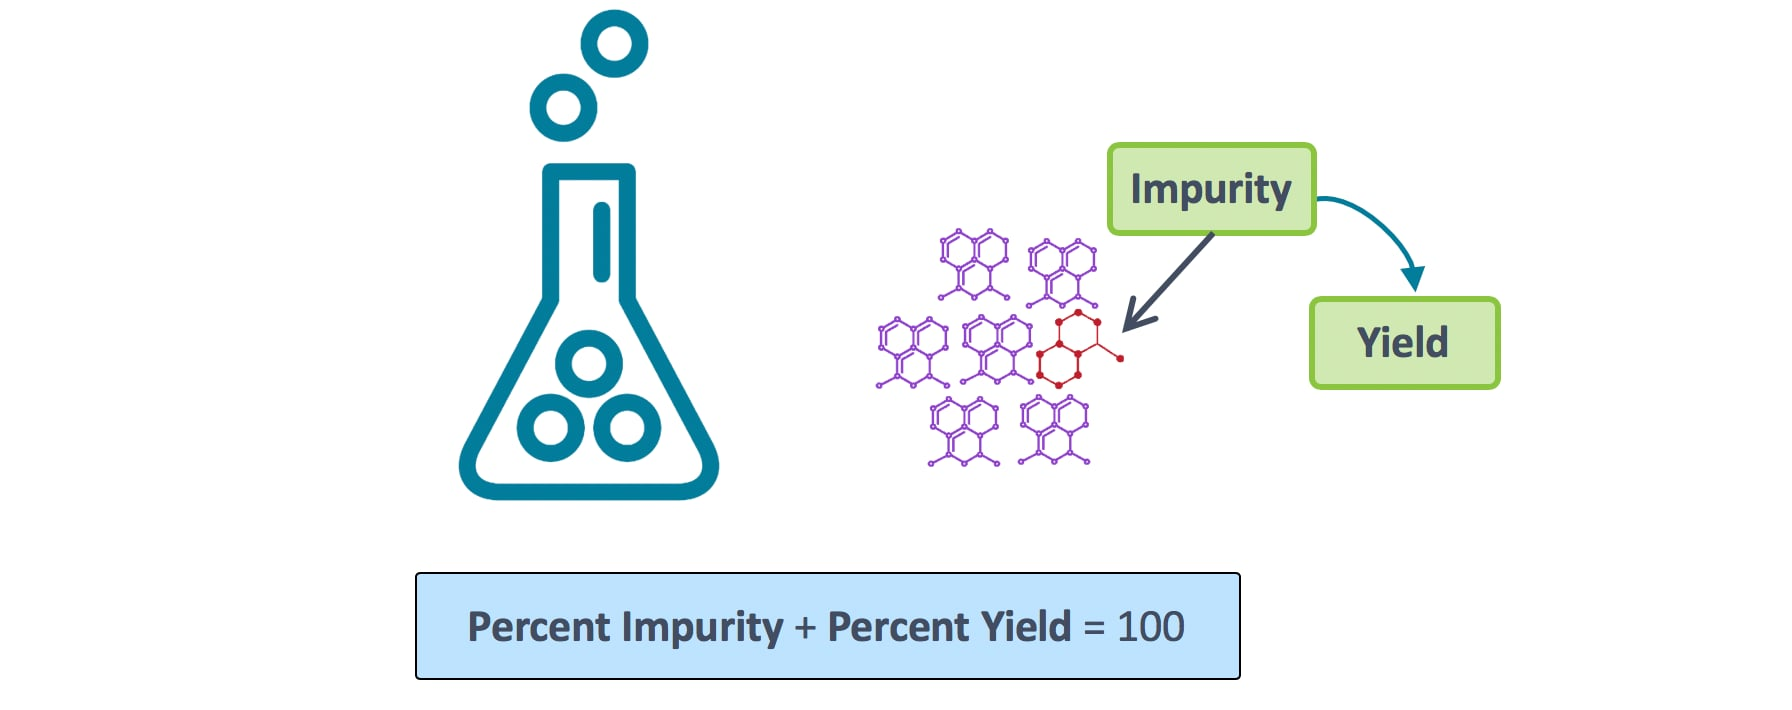 mlr-impurity-diagram